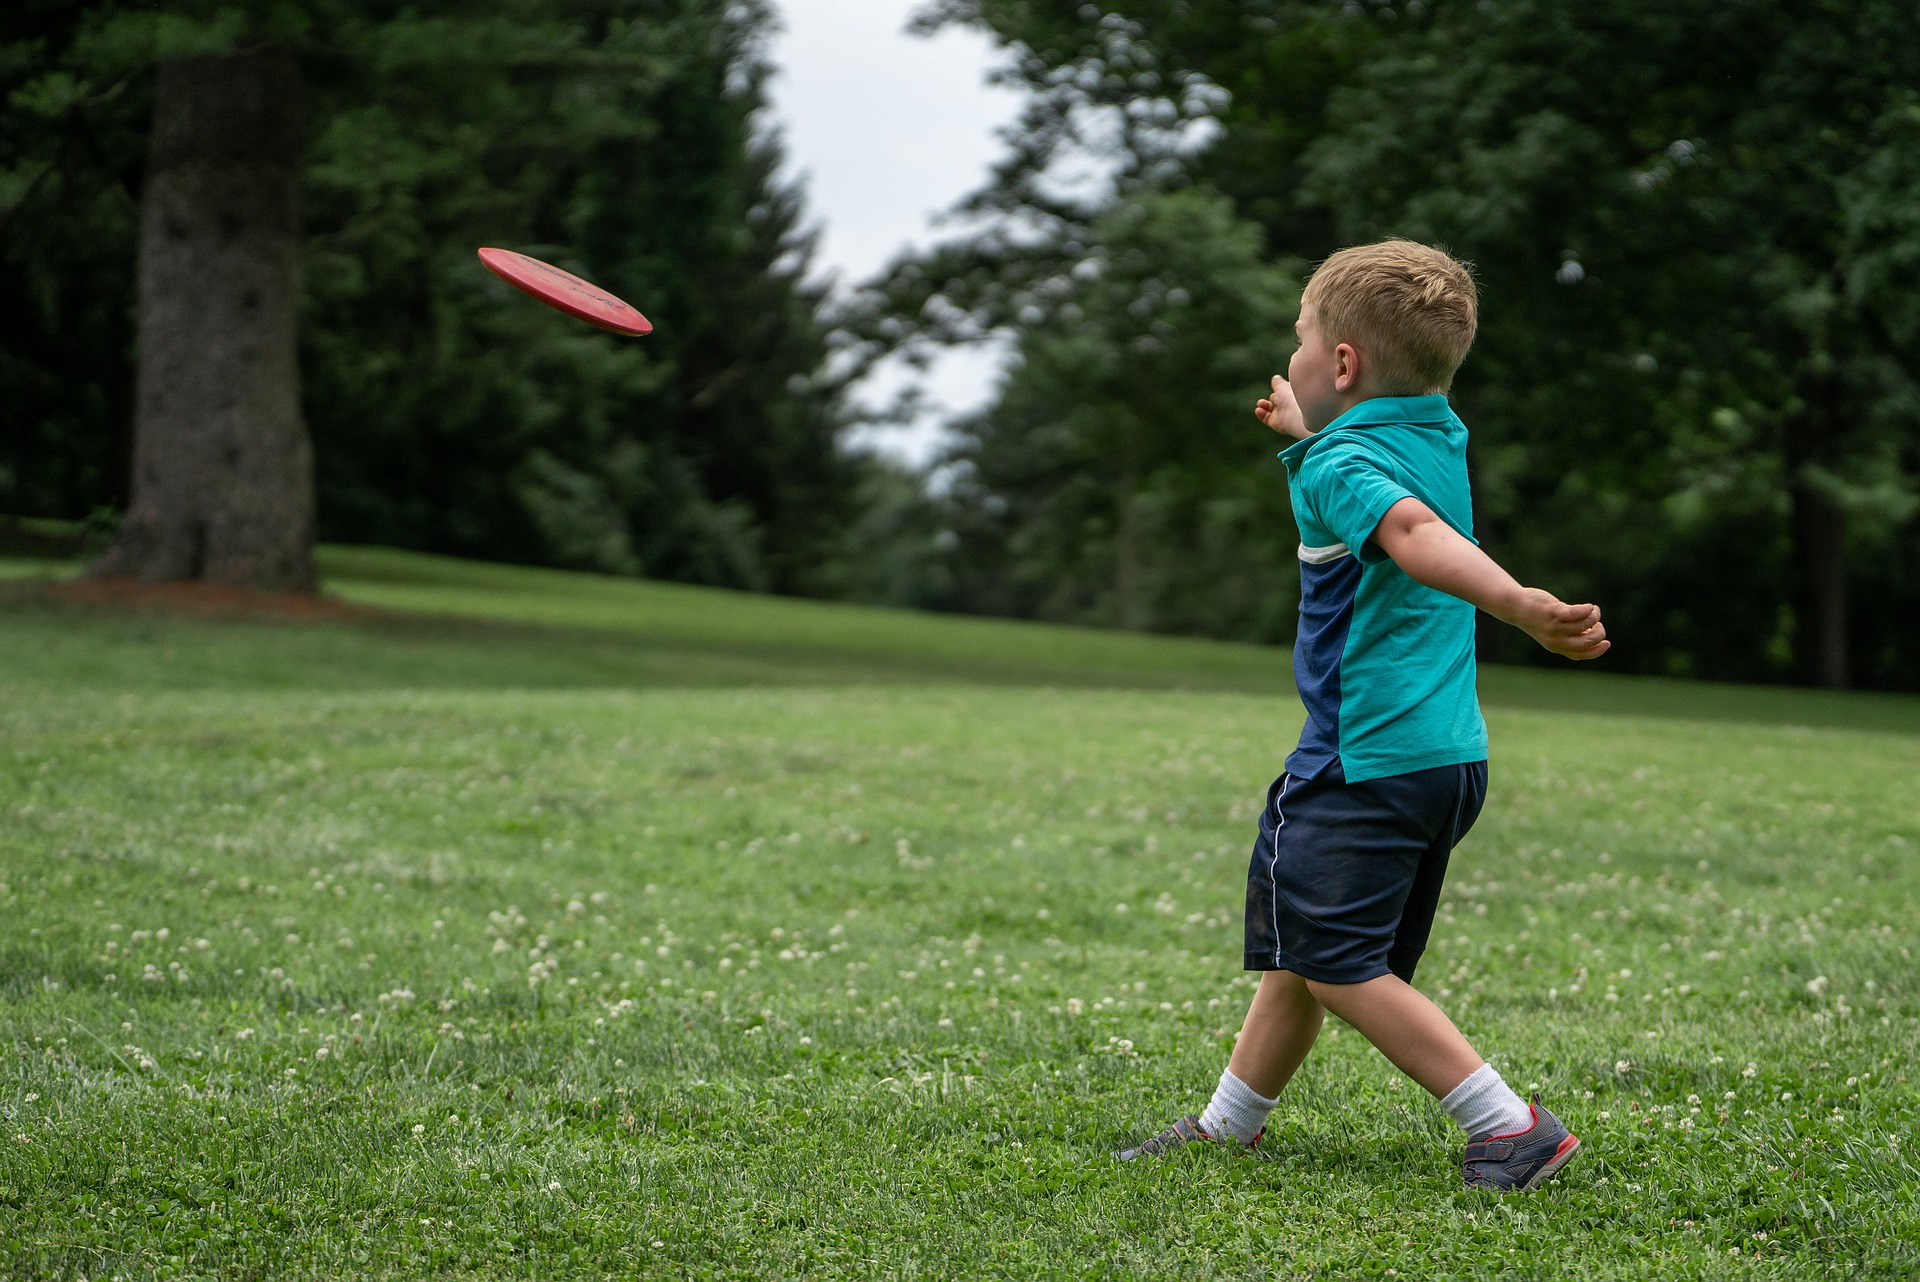 3 Reasons You Should Play Disc Golf With Your Kids